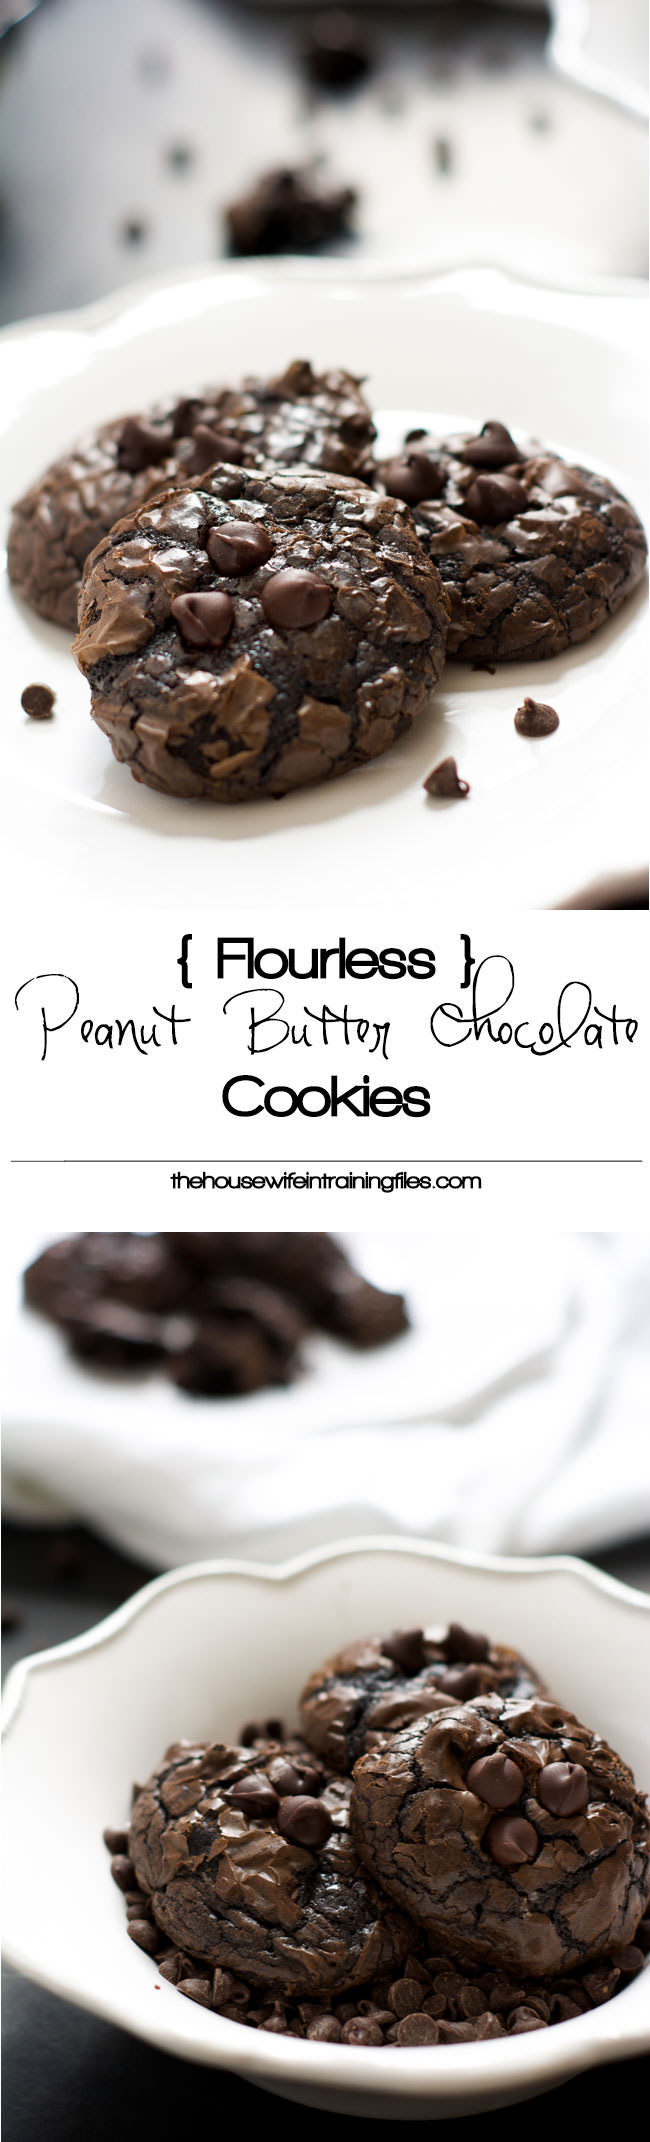 Flourless Peanut Butter Chocolate Cookies